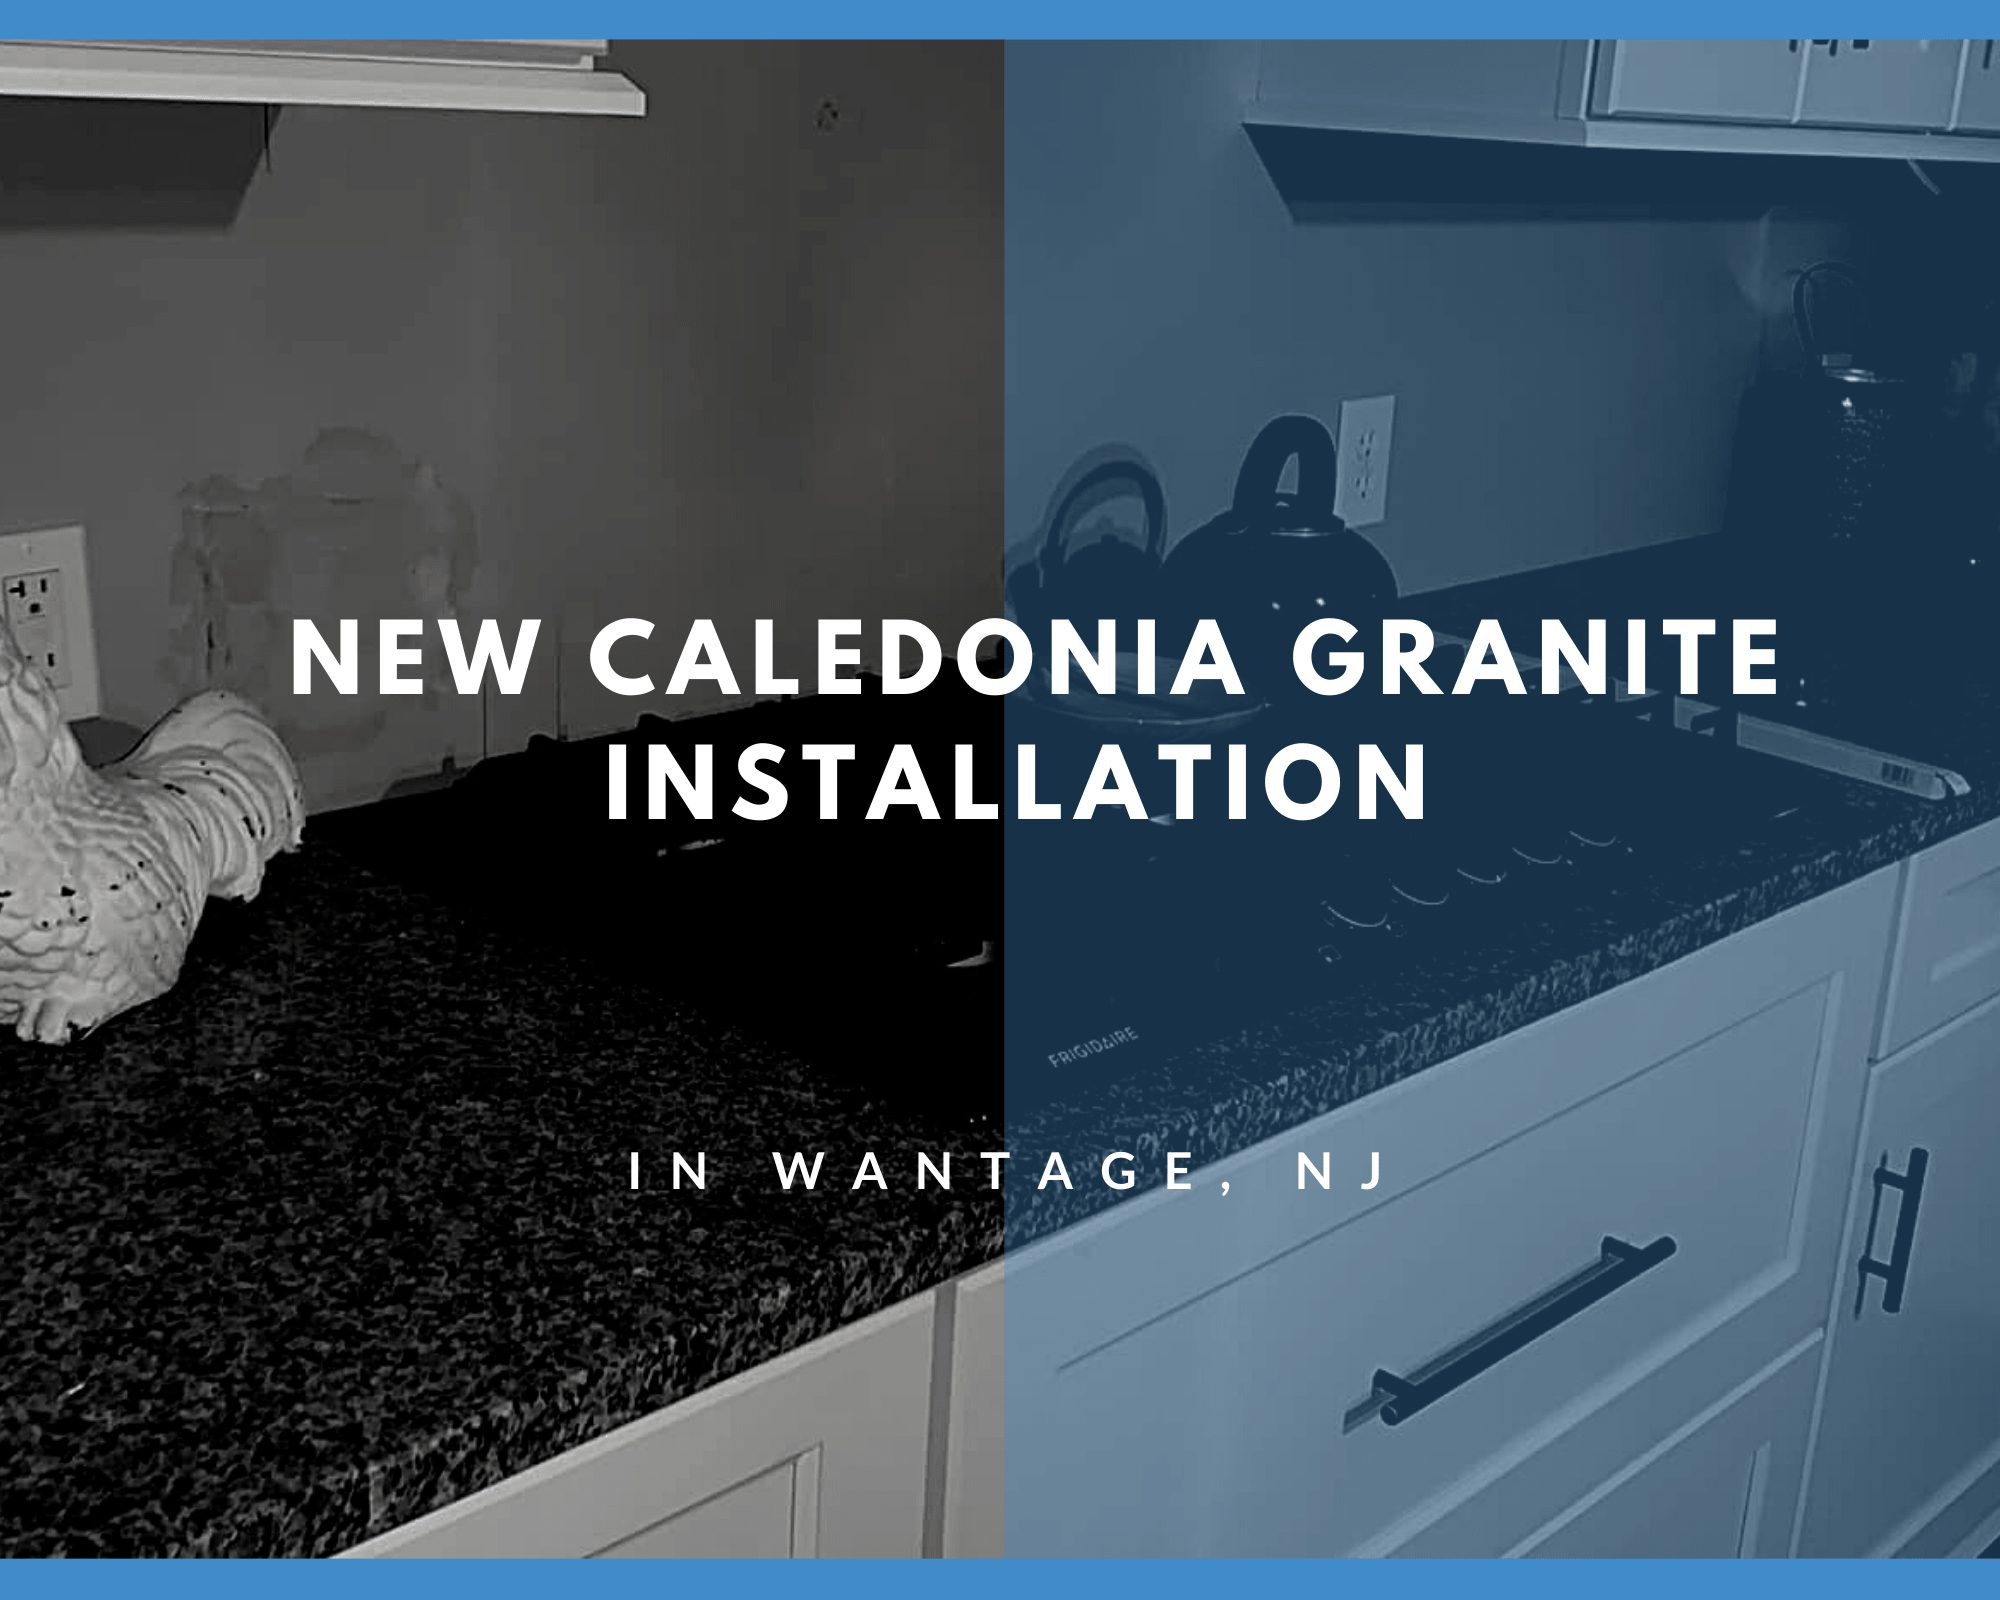 New Caledonia Granite Installation Project in Wantage, NJ